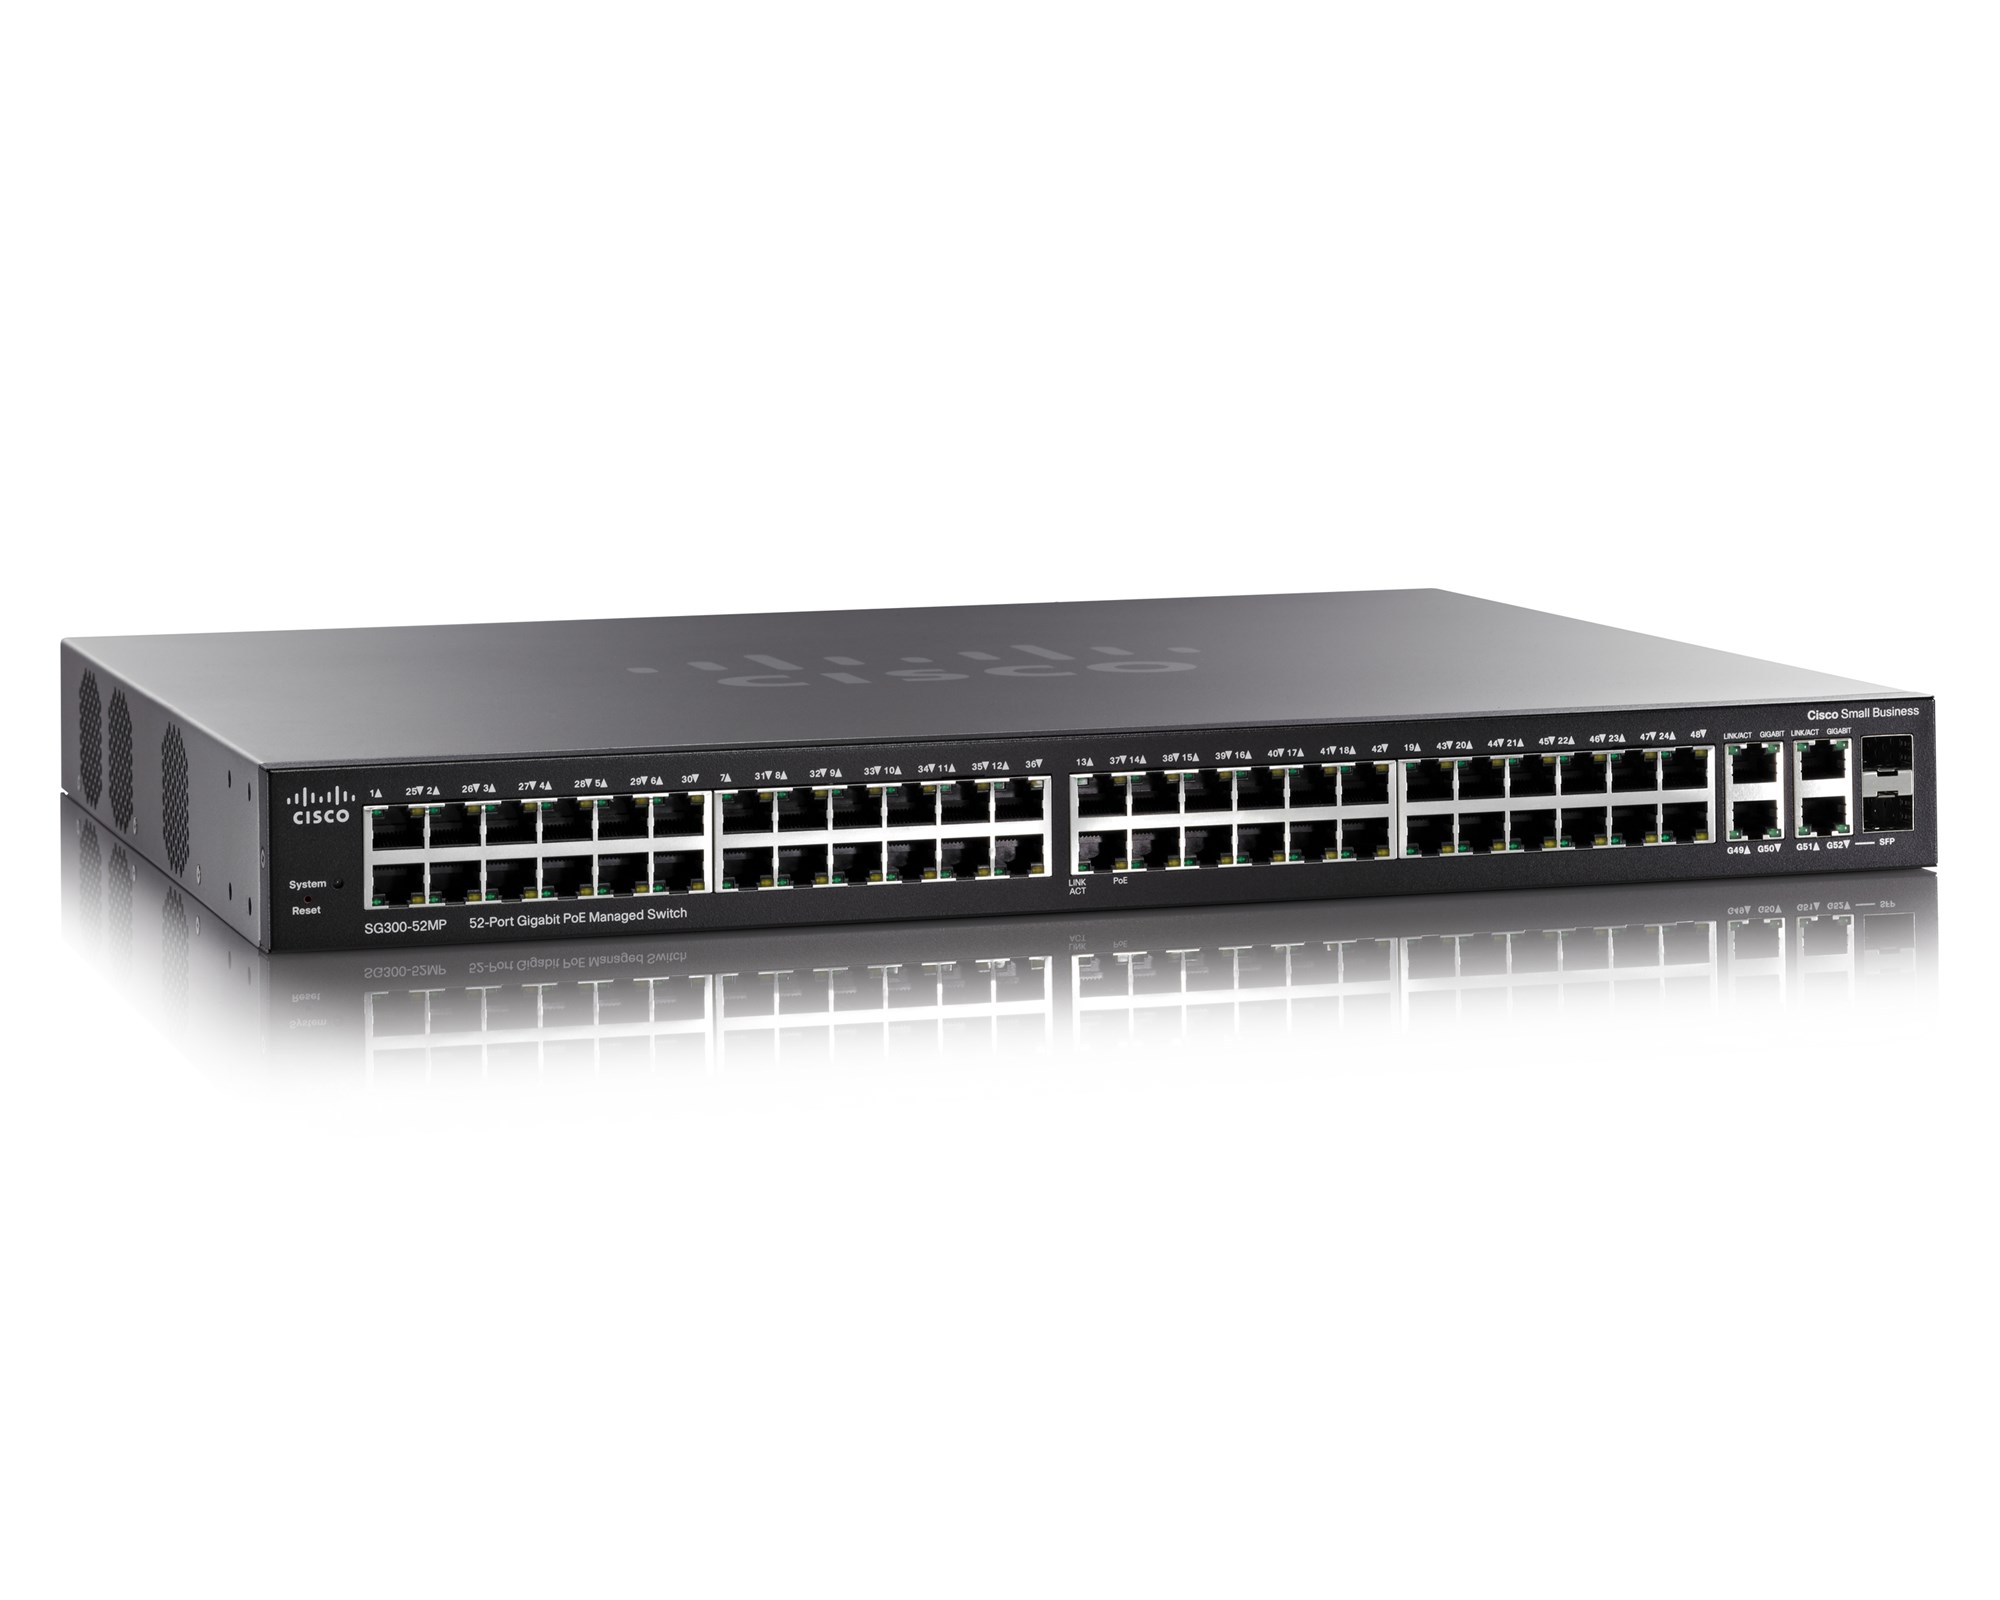 CISCO SG300-52MP-K9-EU SMALL BUSINESS SG300 52-PORT GIGABIT MAX-POE MANAGED SWITCH